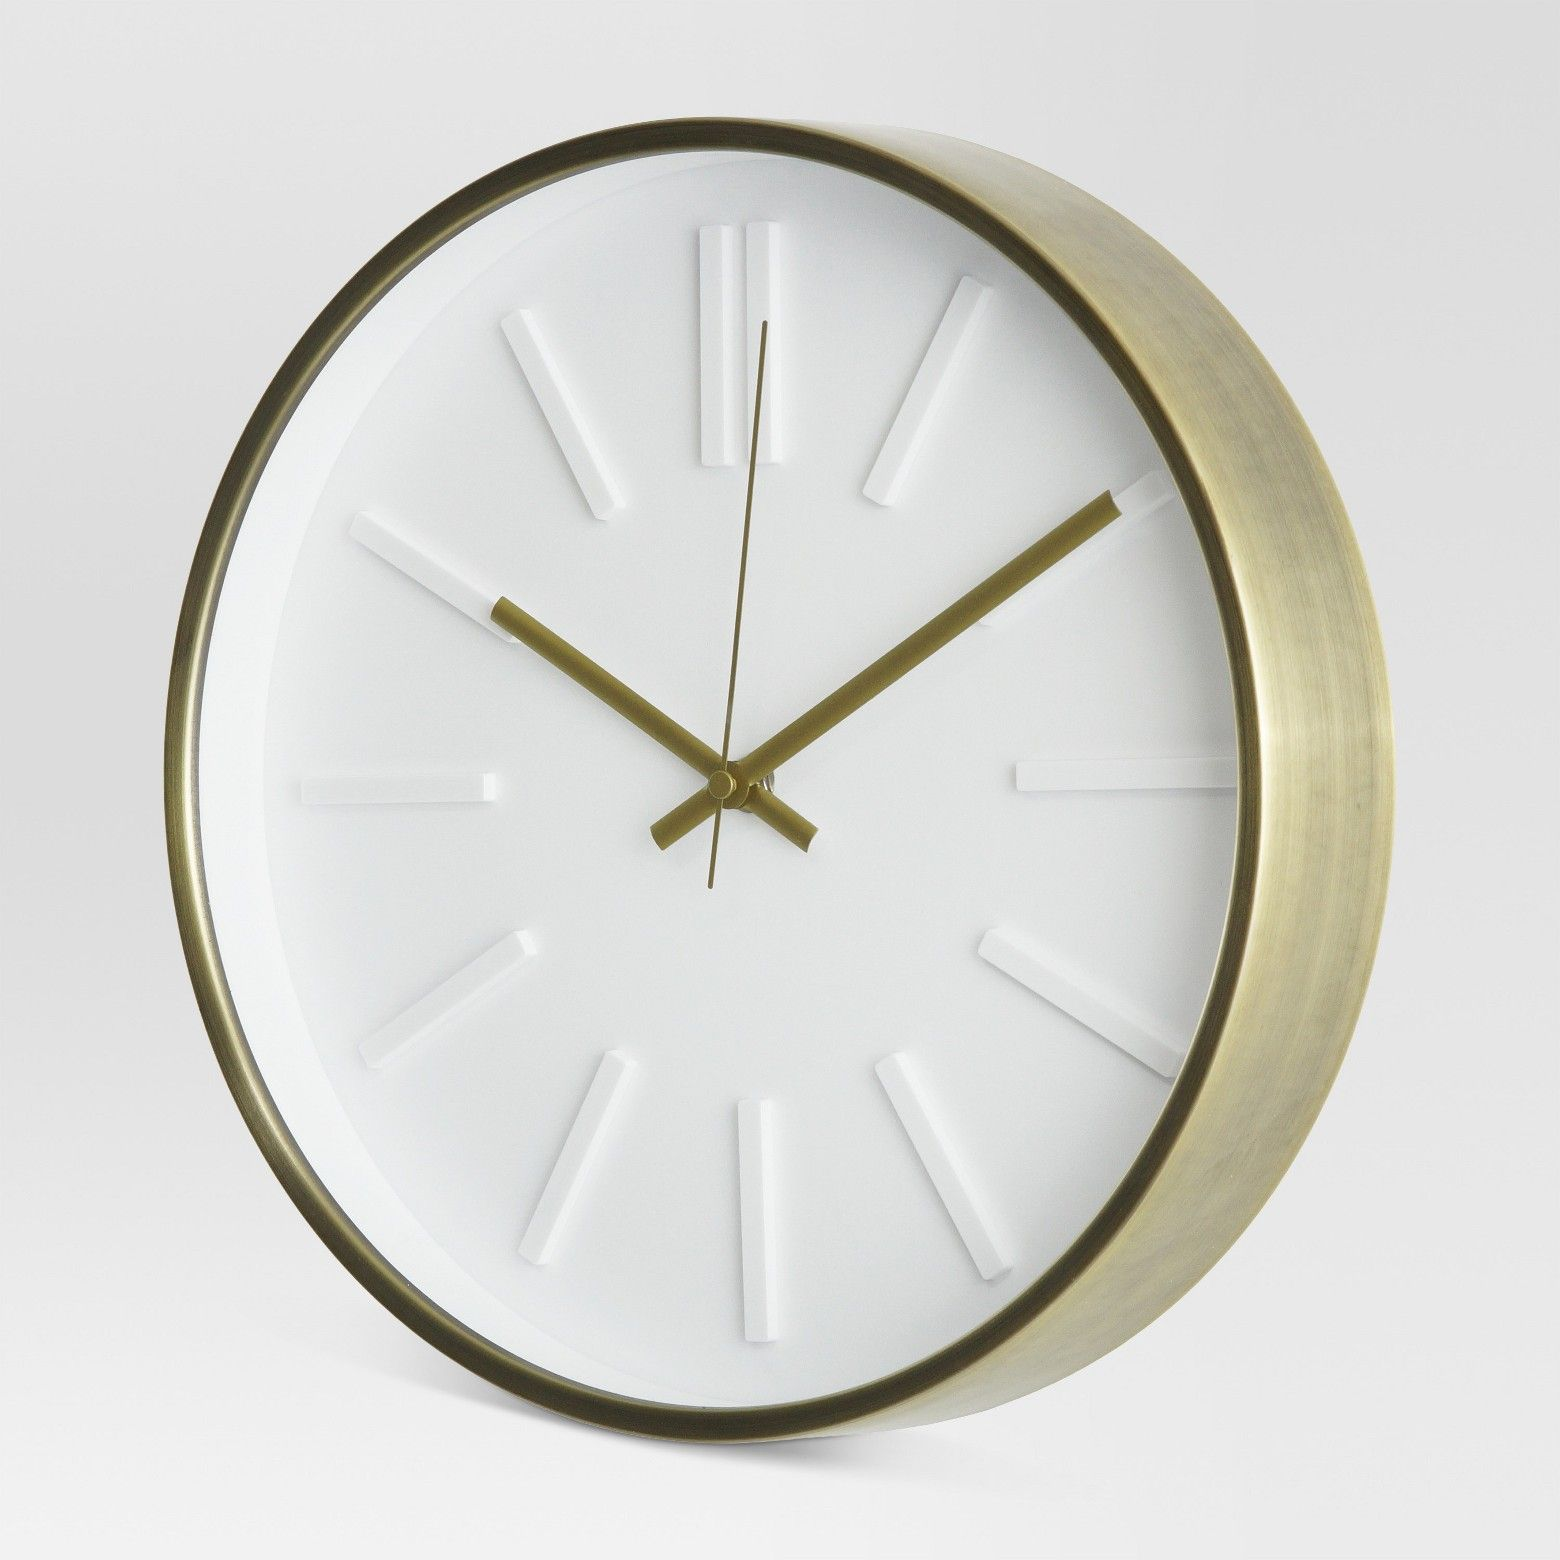 Raised Marker 13 Wall Clock White Brass Project 62 Target Wall Clock Small Wall Clock White Wall Clocks